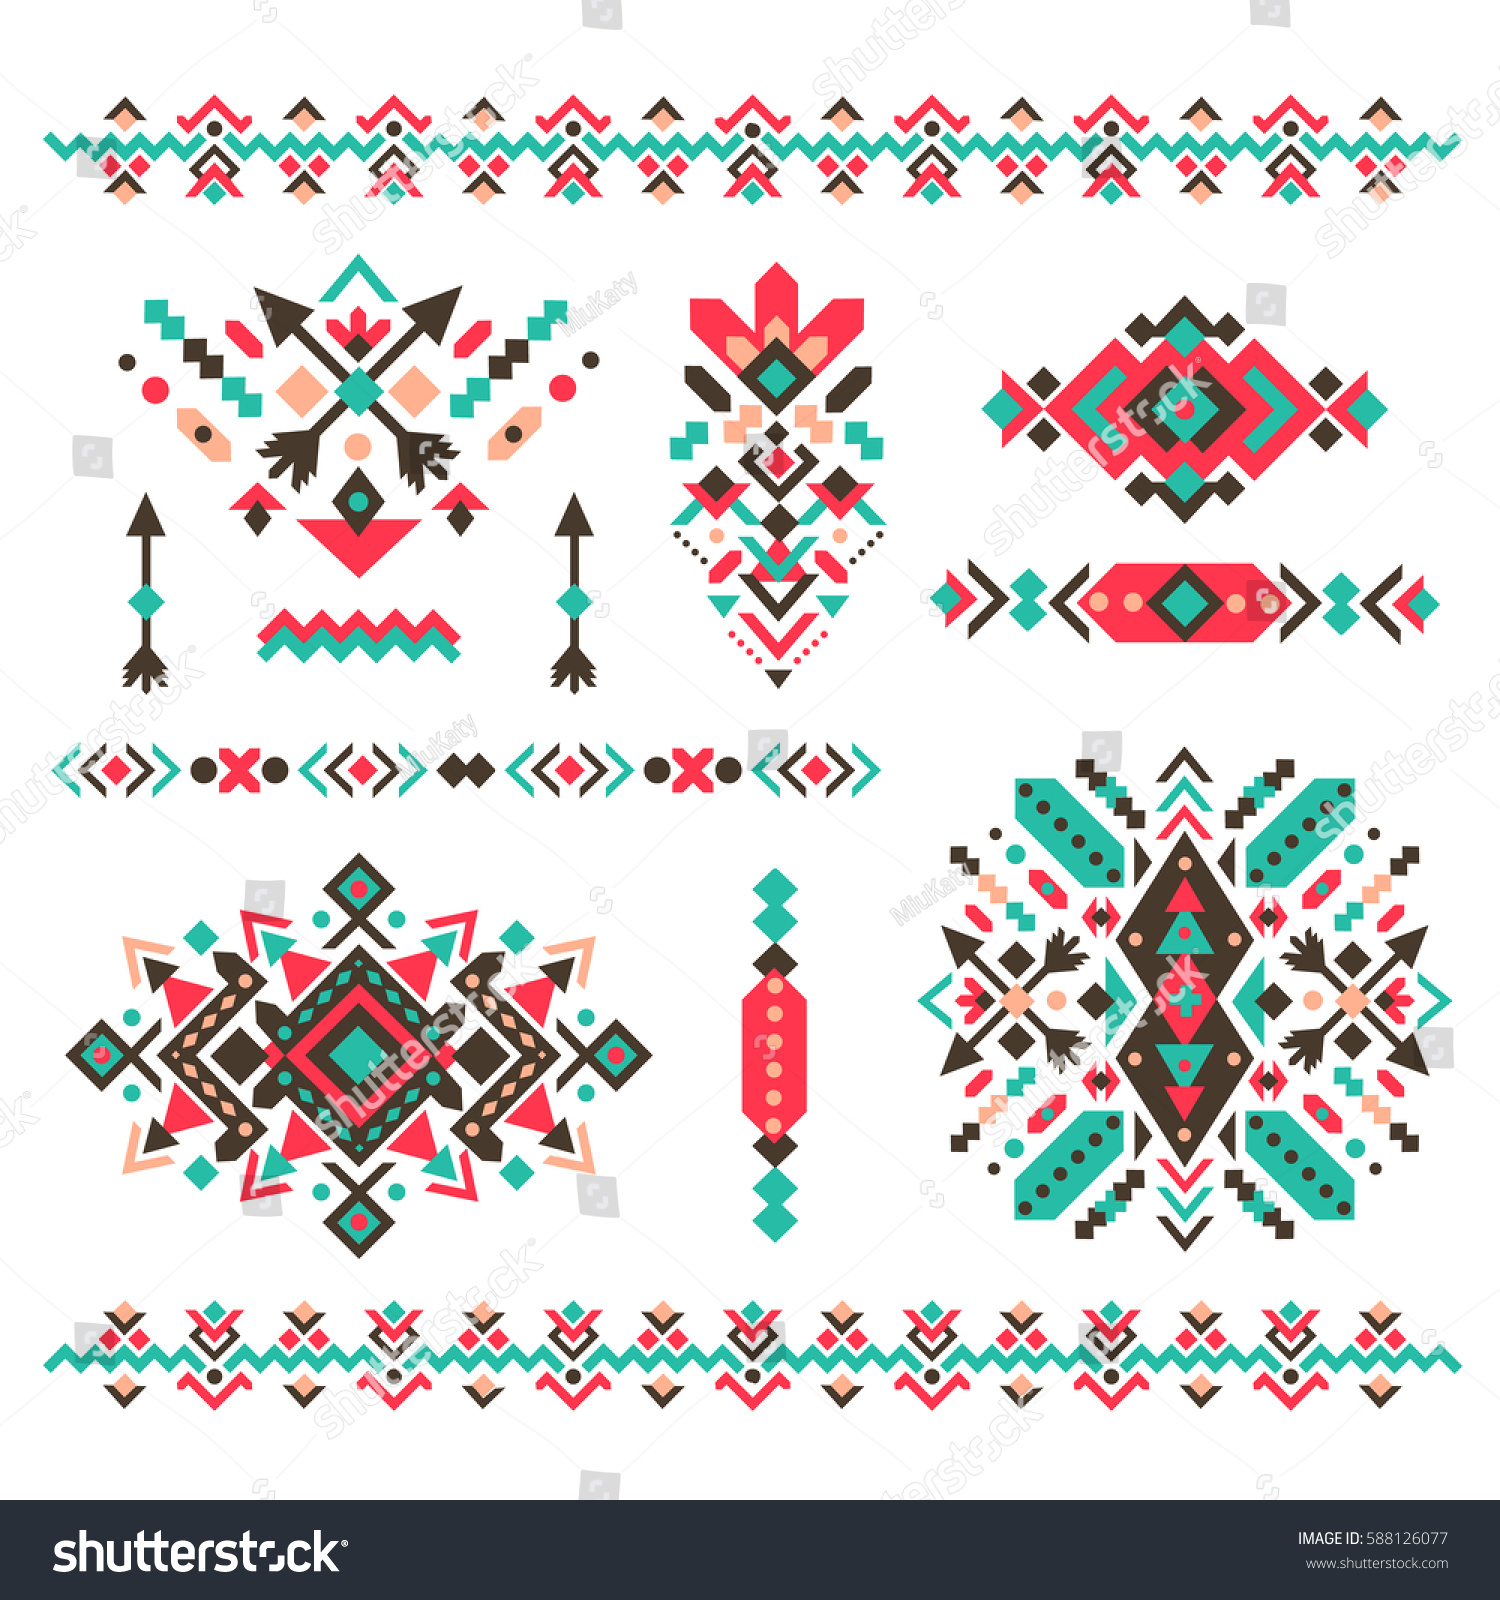 Set fashion mexican navajo aztec native stock vector for American indian design and decoration